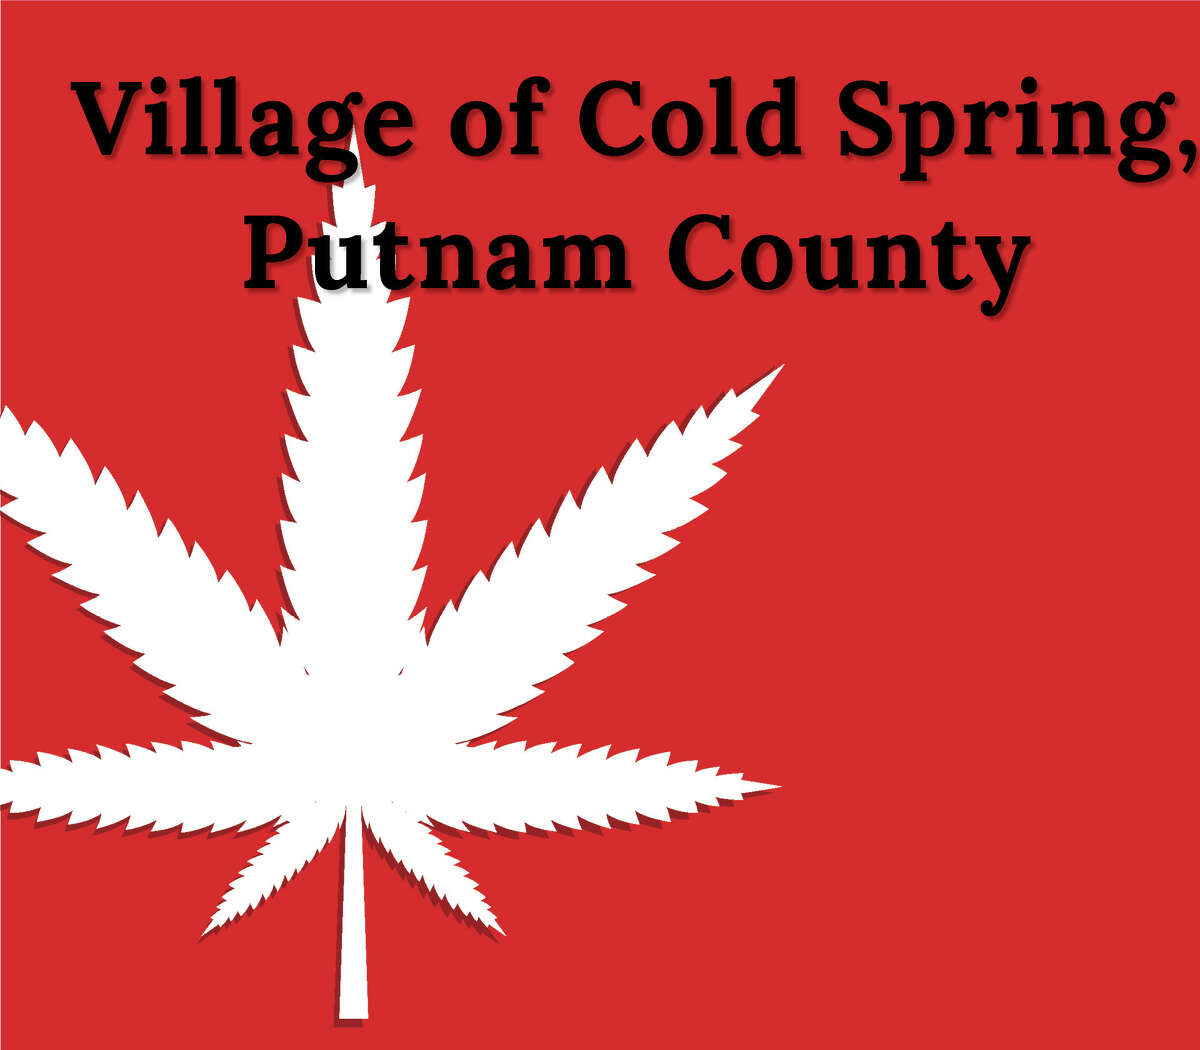 """On July 20, the Cold Spring Village Board made the unanimous decision to opt-out of cannabis dispensaries and on-site consumption. However, the board voted to create a """"permissive referendum"""" that will put the issue on the Nov. 2 ballot without a petition. This is different than a """"passive referendum"""" that requires local residents to submit a petition."""